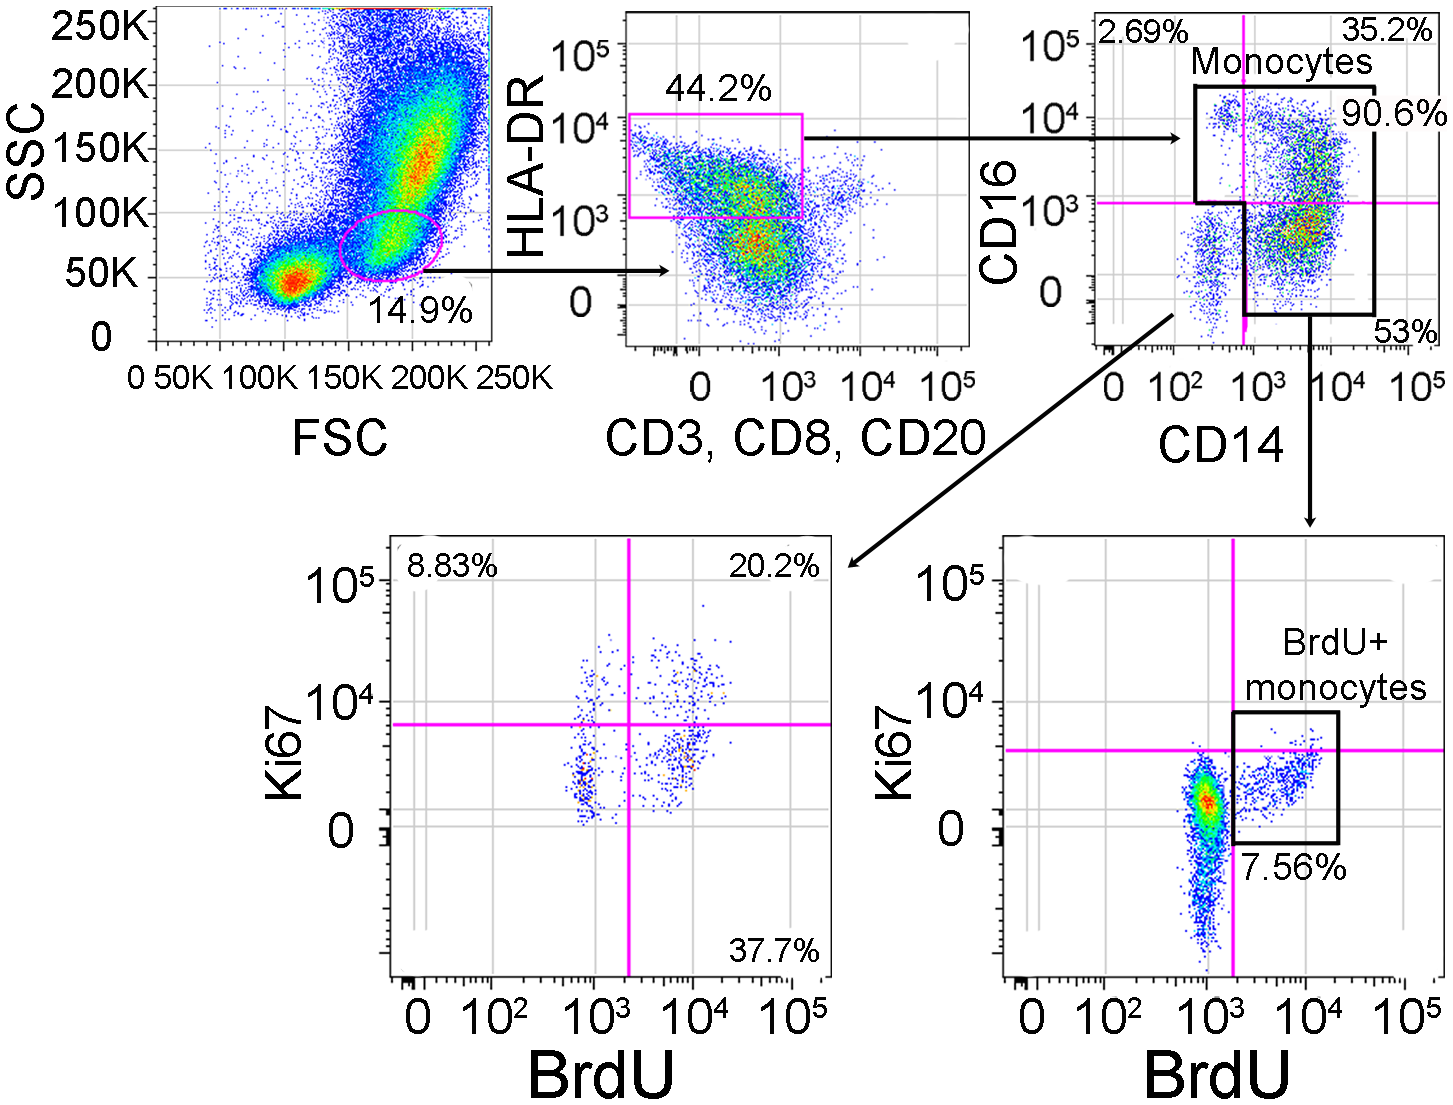 Gating strategy for identifying BrdU+ monocytes.